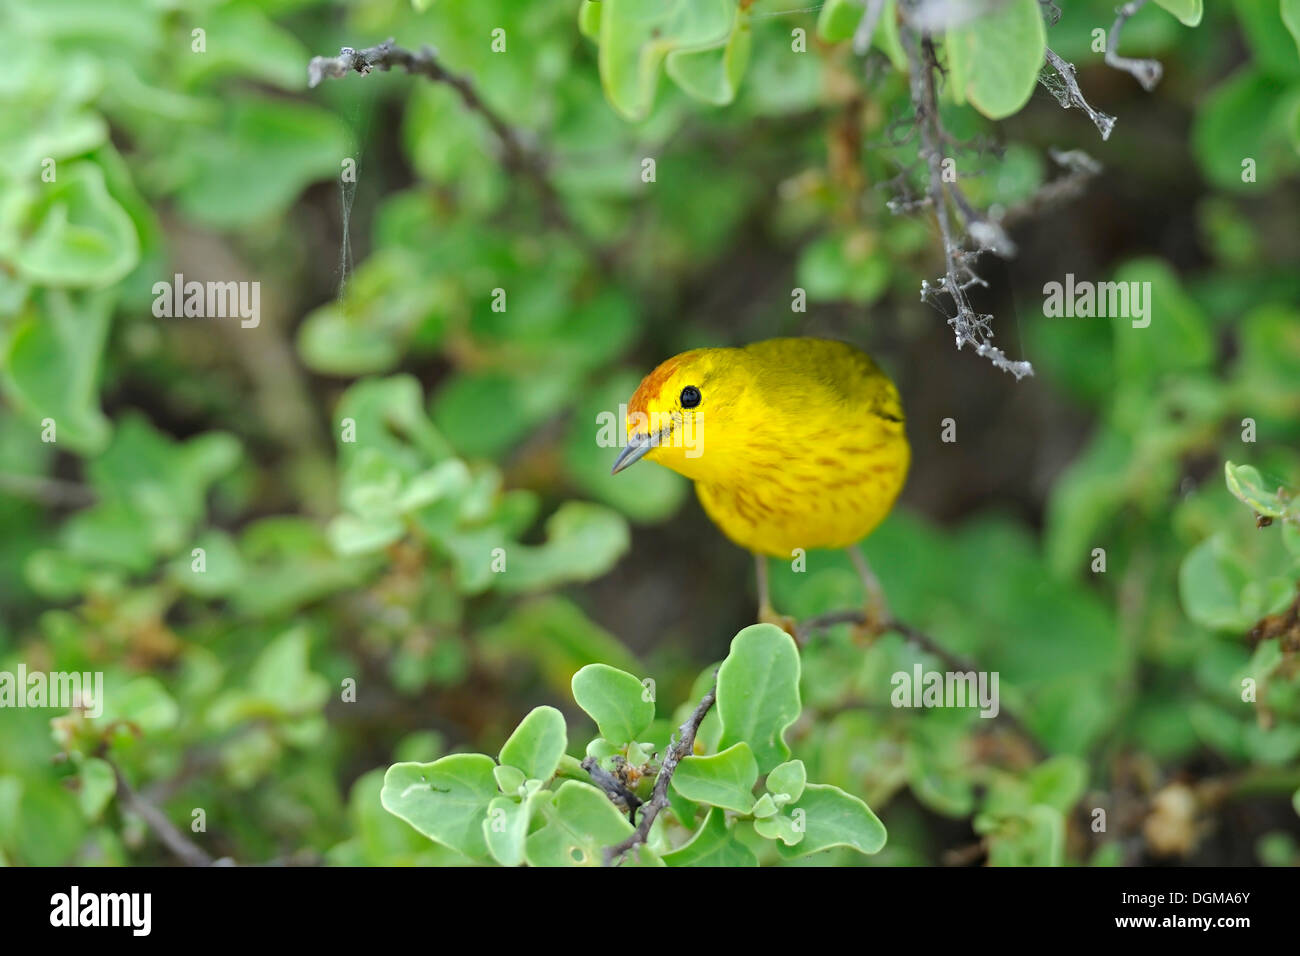 Yellow Warbler (Setophaga petechia formerly Dendroica petechia), adult, male, Española Island, Galapagos Islands - Stock Image